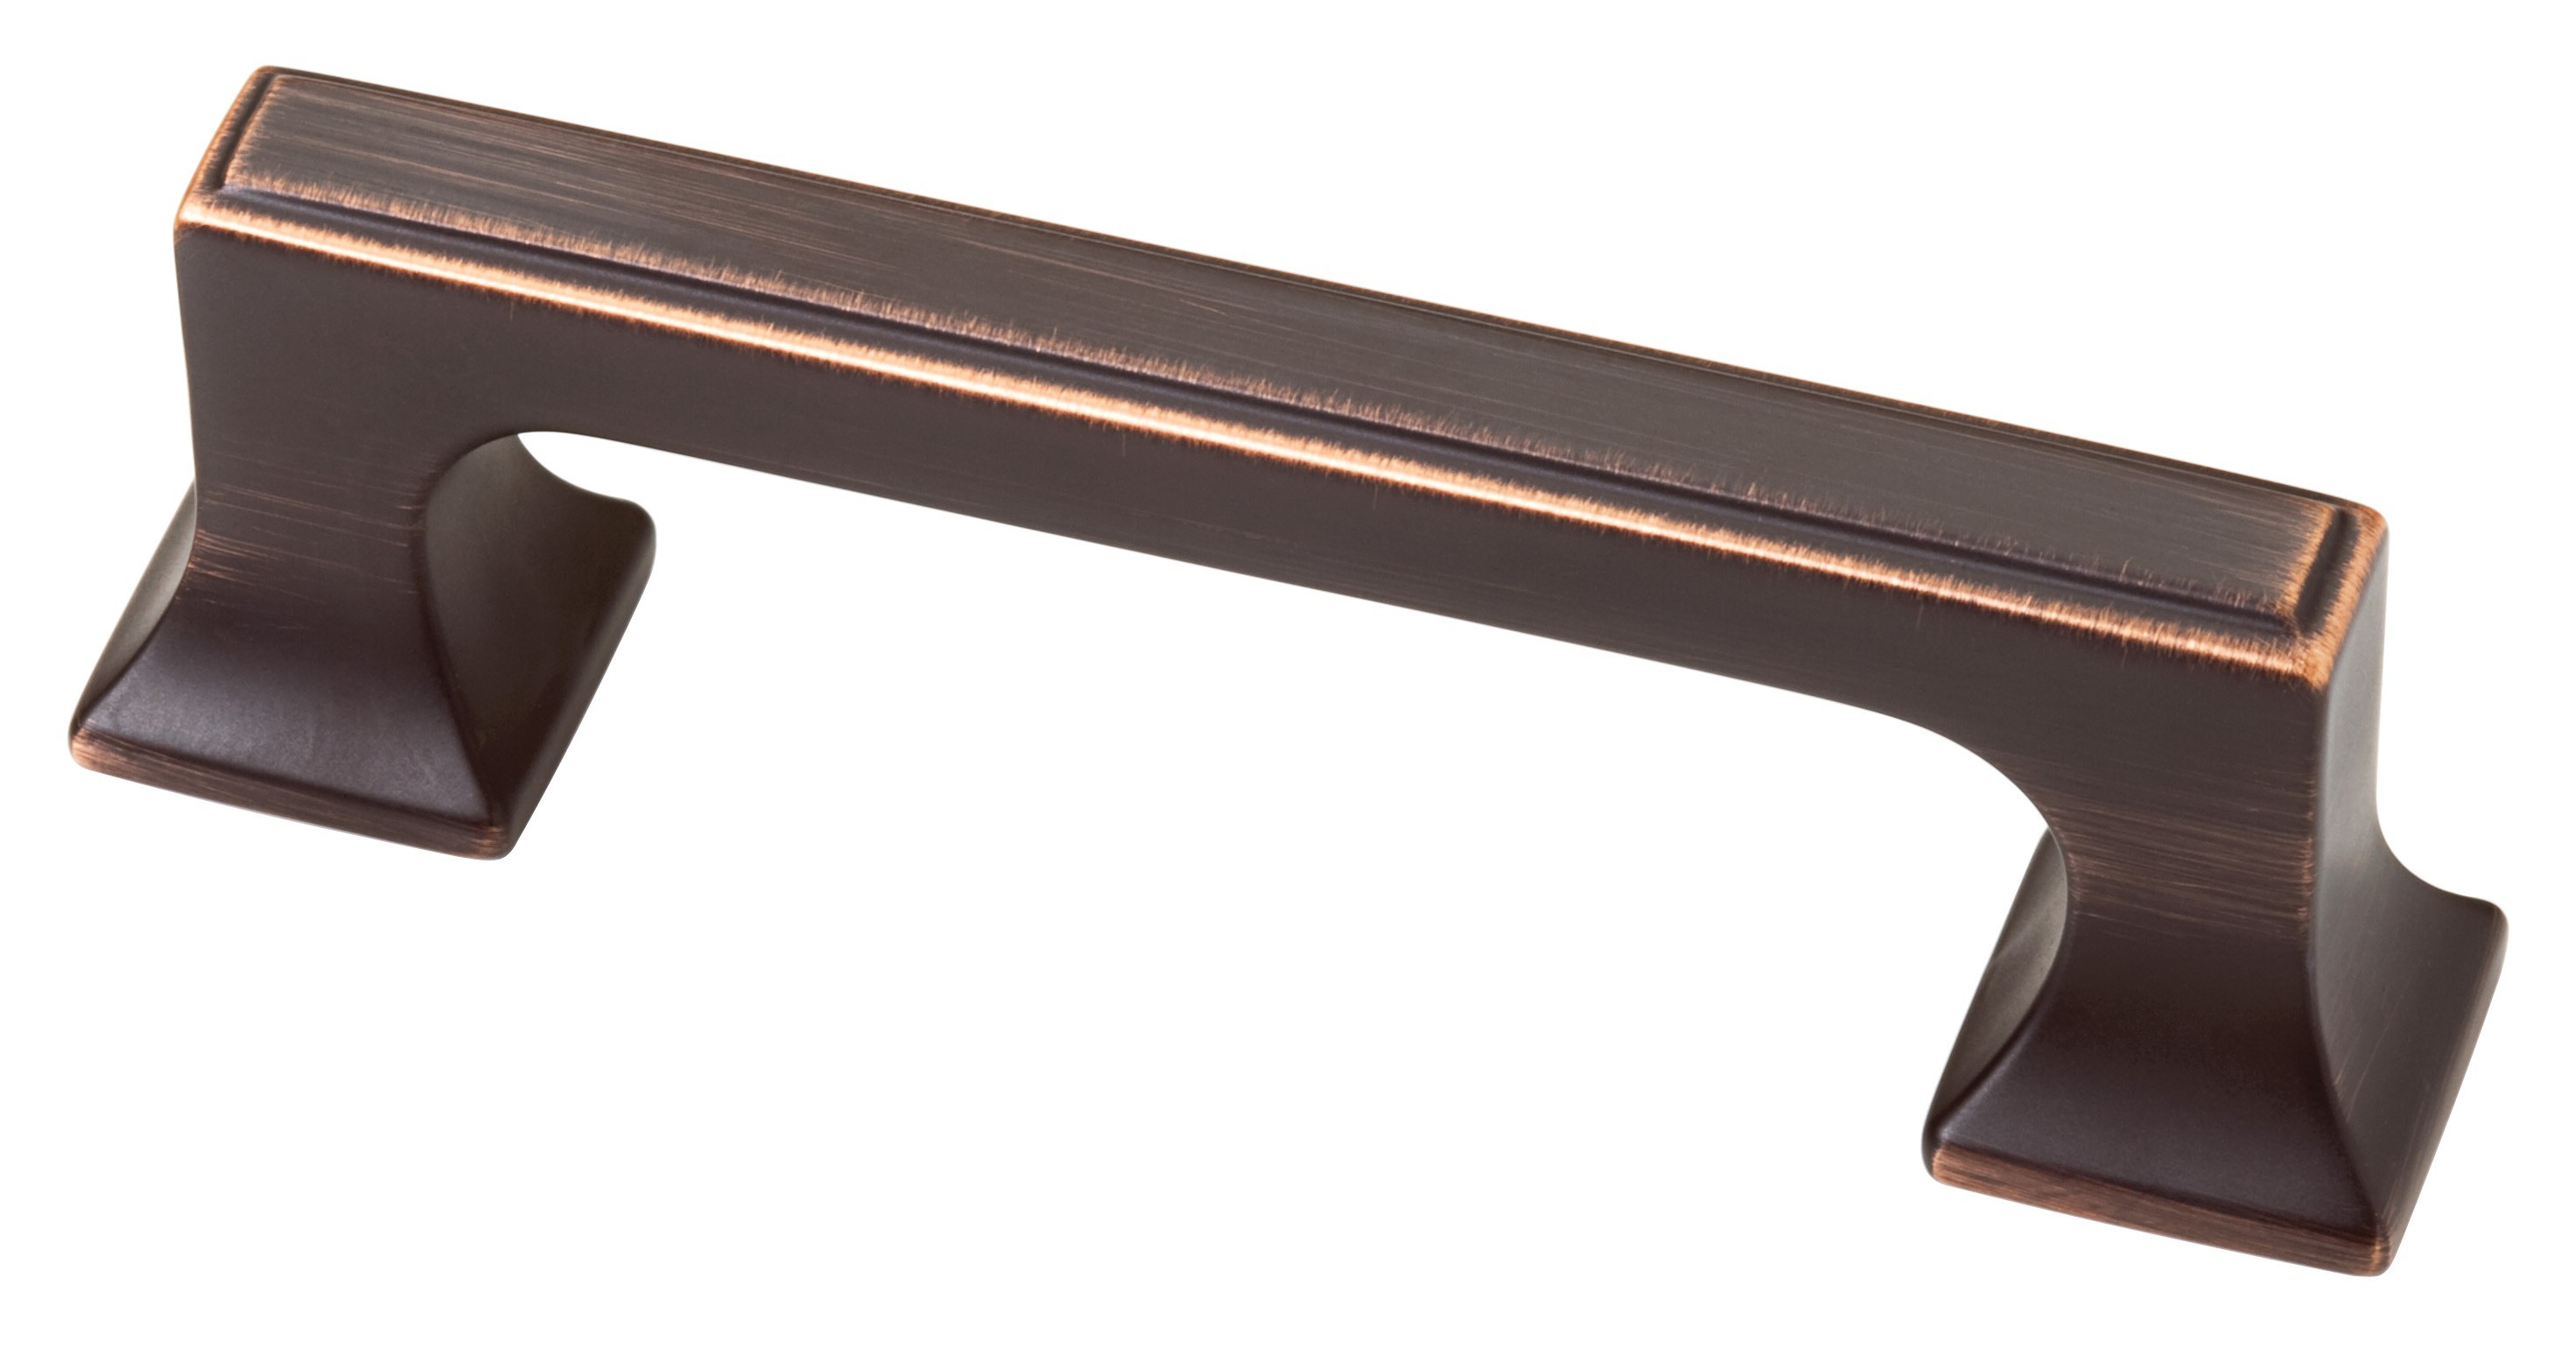 Liberty Hardware P20383-VBC-C, 3in Pull With Square Feet, Zinc Die Cast Pull, Bronze With Copper Highlights